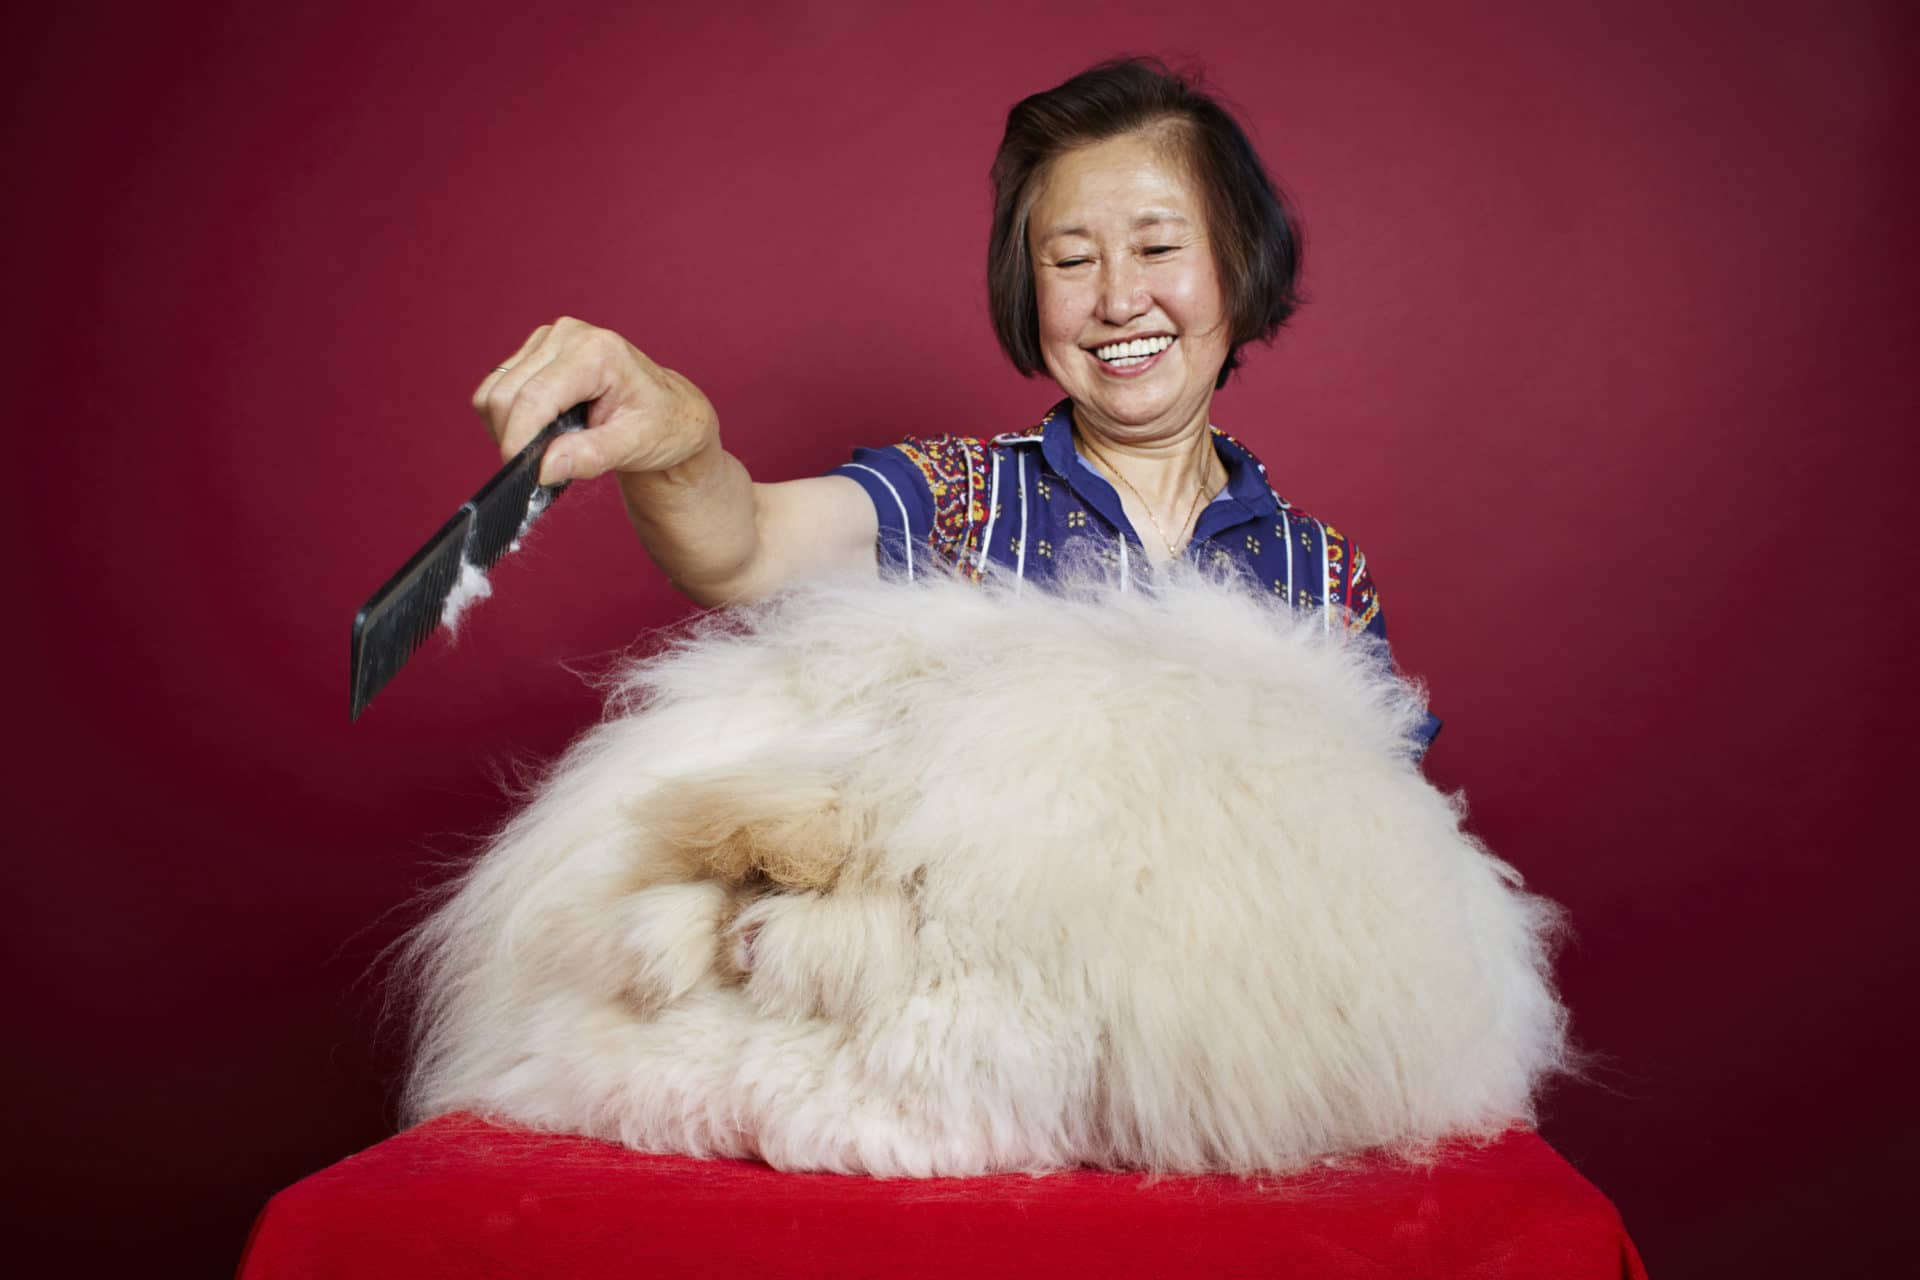 Längstes Fell eines Kaninchens copyright: James Ellerker / Guinness World Records Also Pictured: Owner Betty Chu